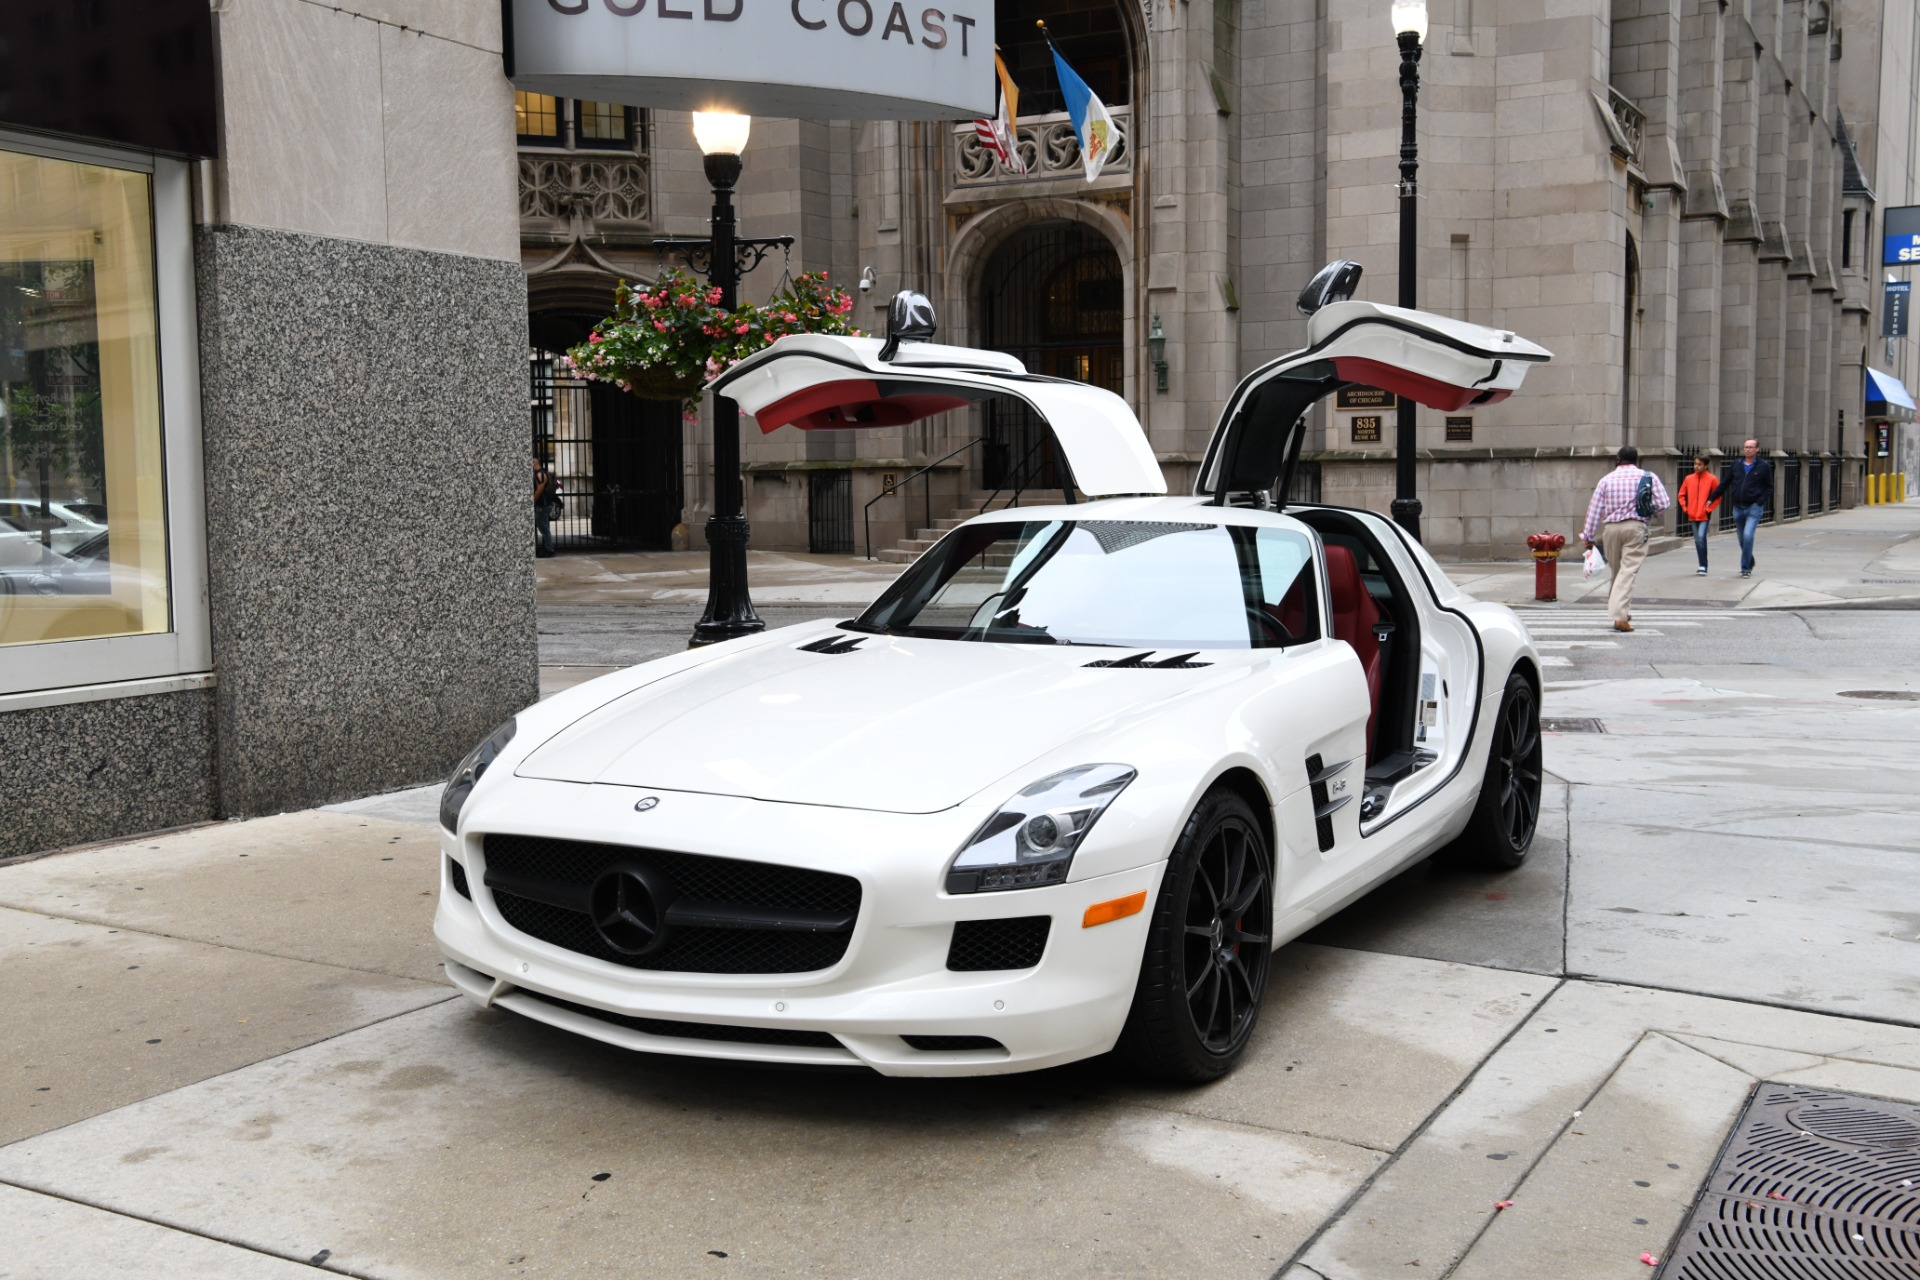 2012 mercedes benz sls amg stock b799b for sale near. Black Bedroom Furniture Sets. Home Design Ideas